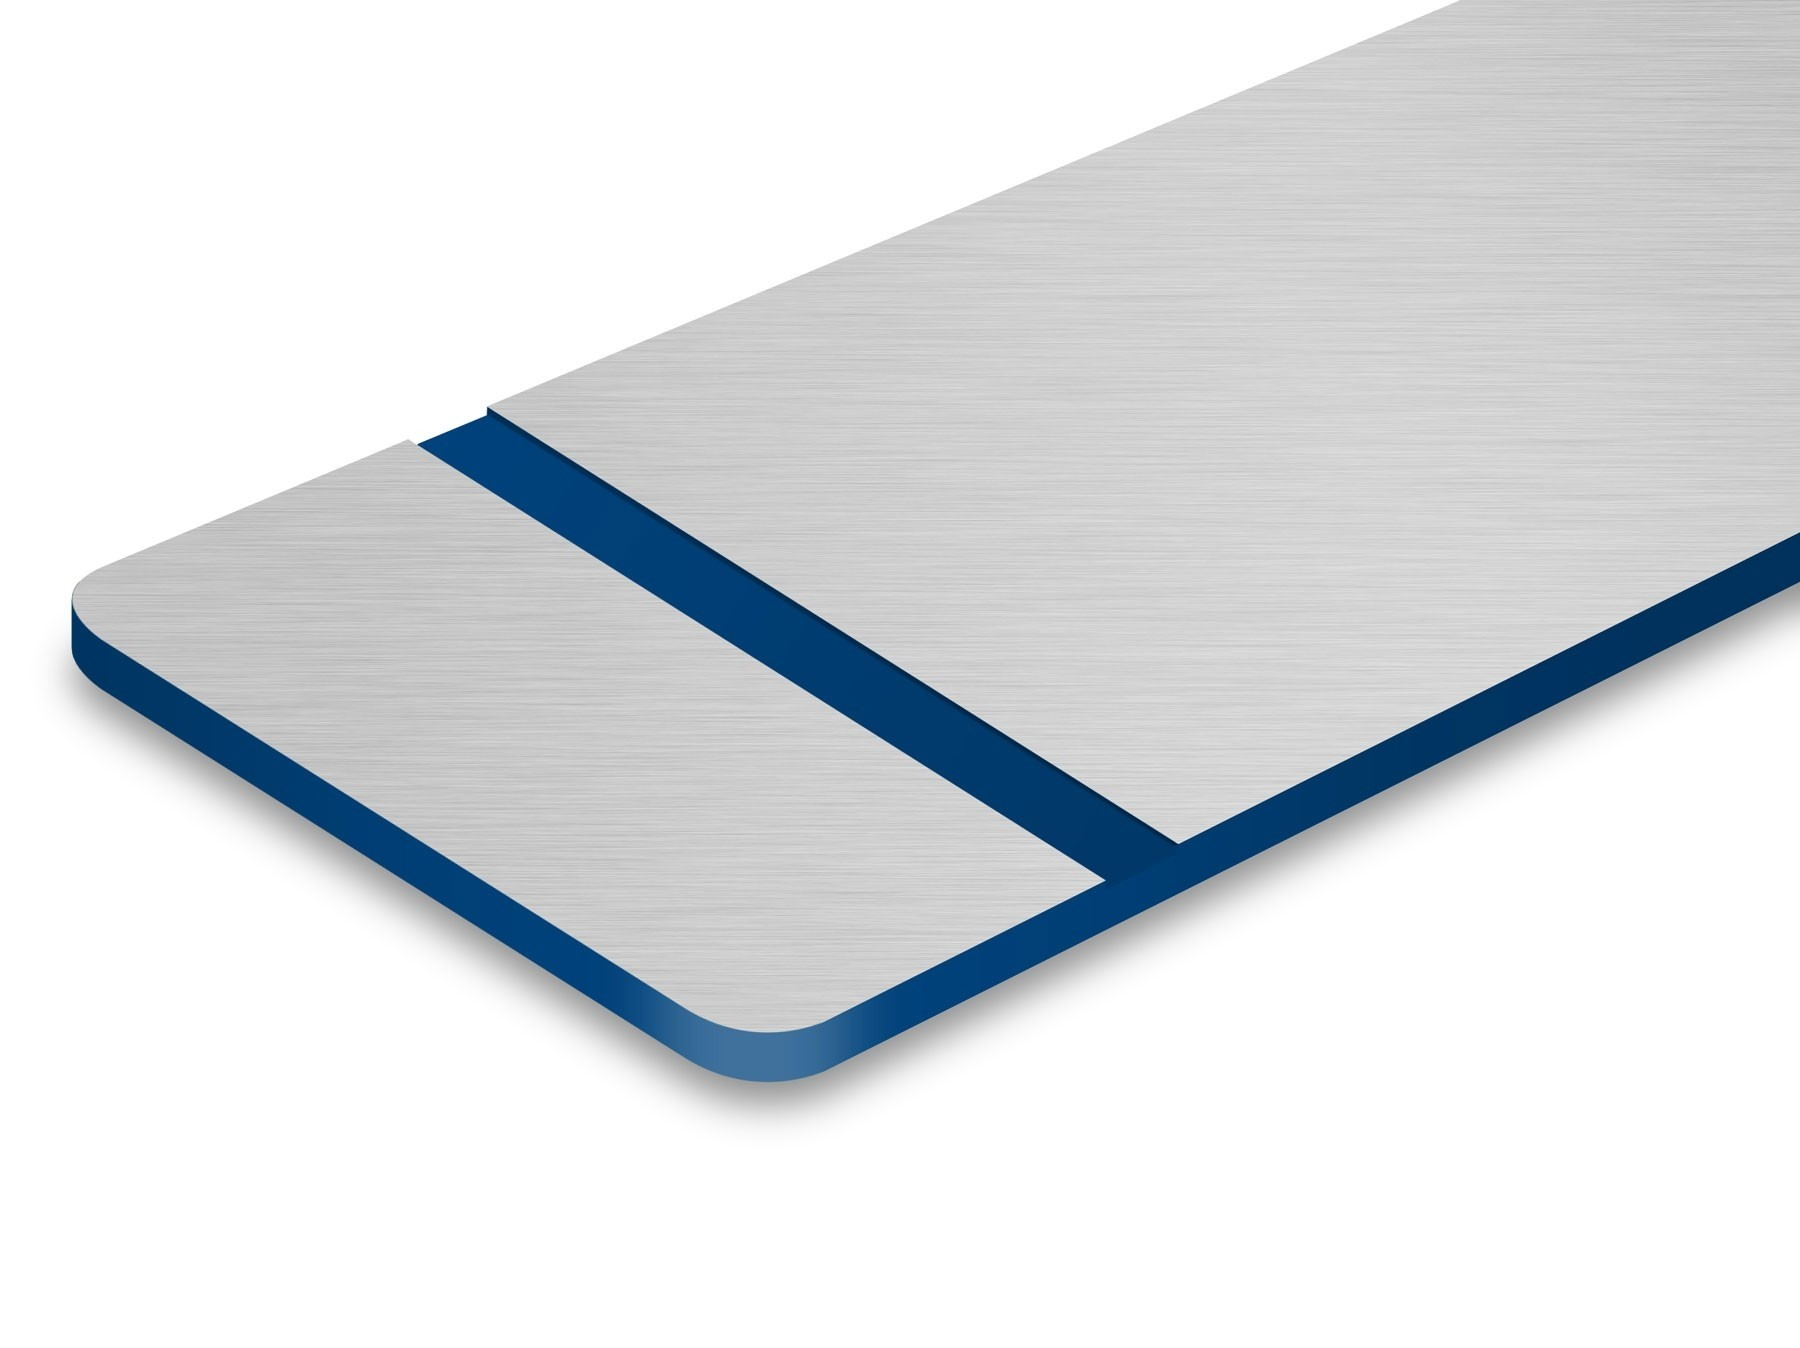 TroLase Metallic Plus, Stainless Steel Brushed/Blue, 2ply, 0.8 mm